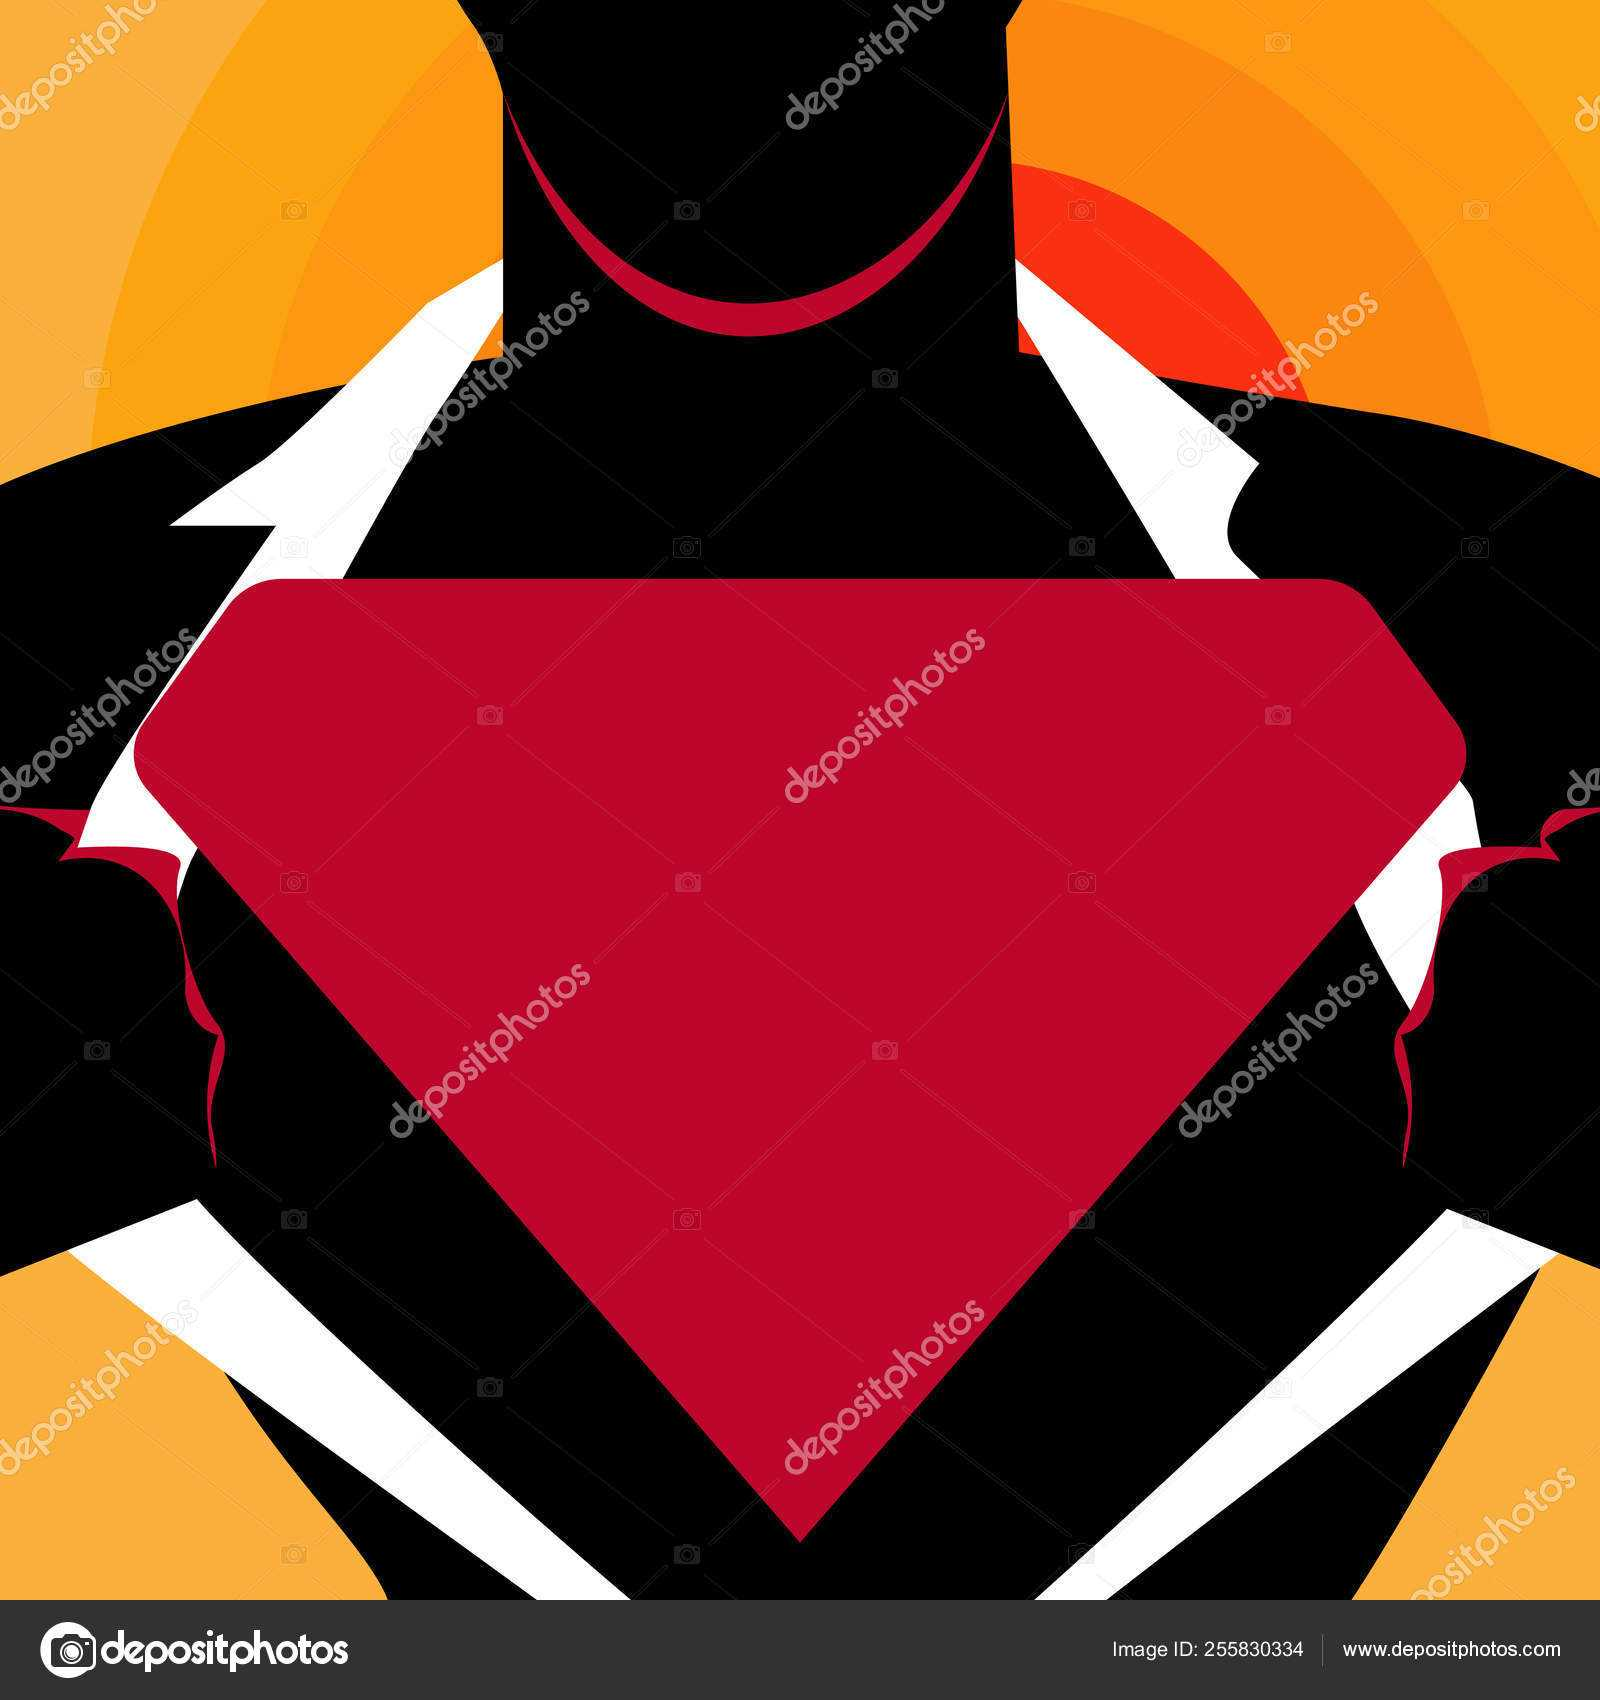 Man In Superman Pose Opening Shirt To Reveal Blank Within Blank Superman Logo Template